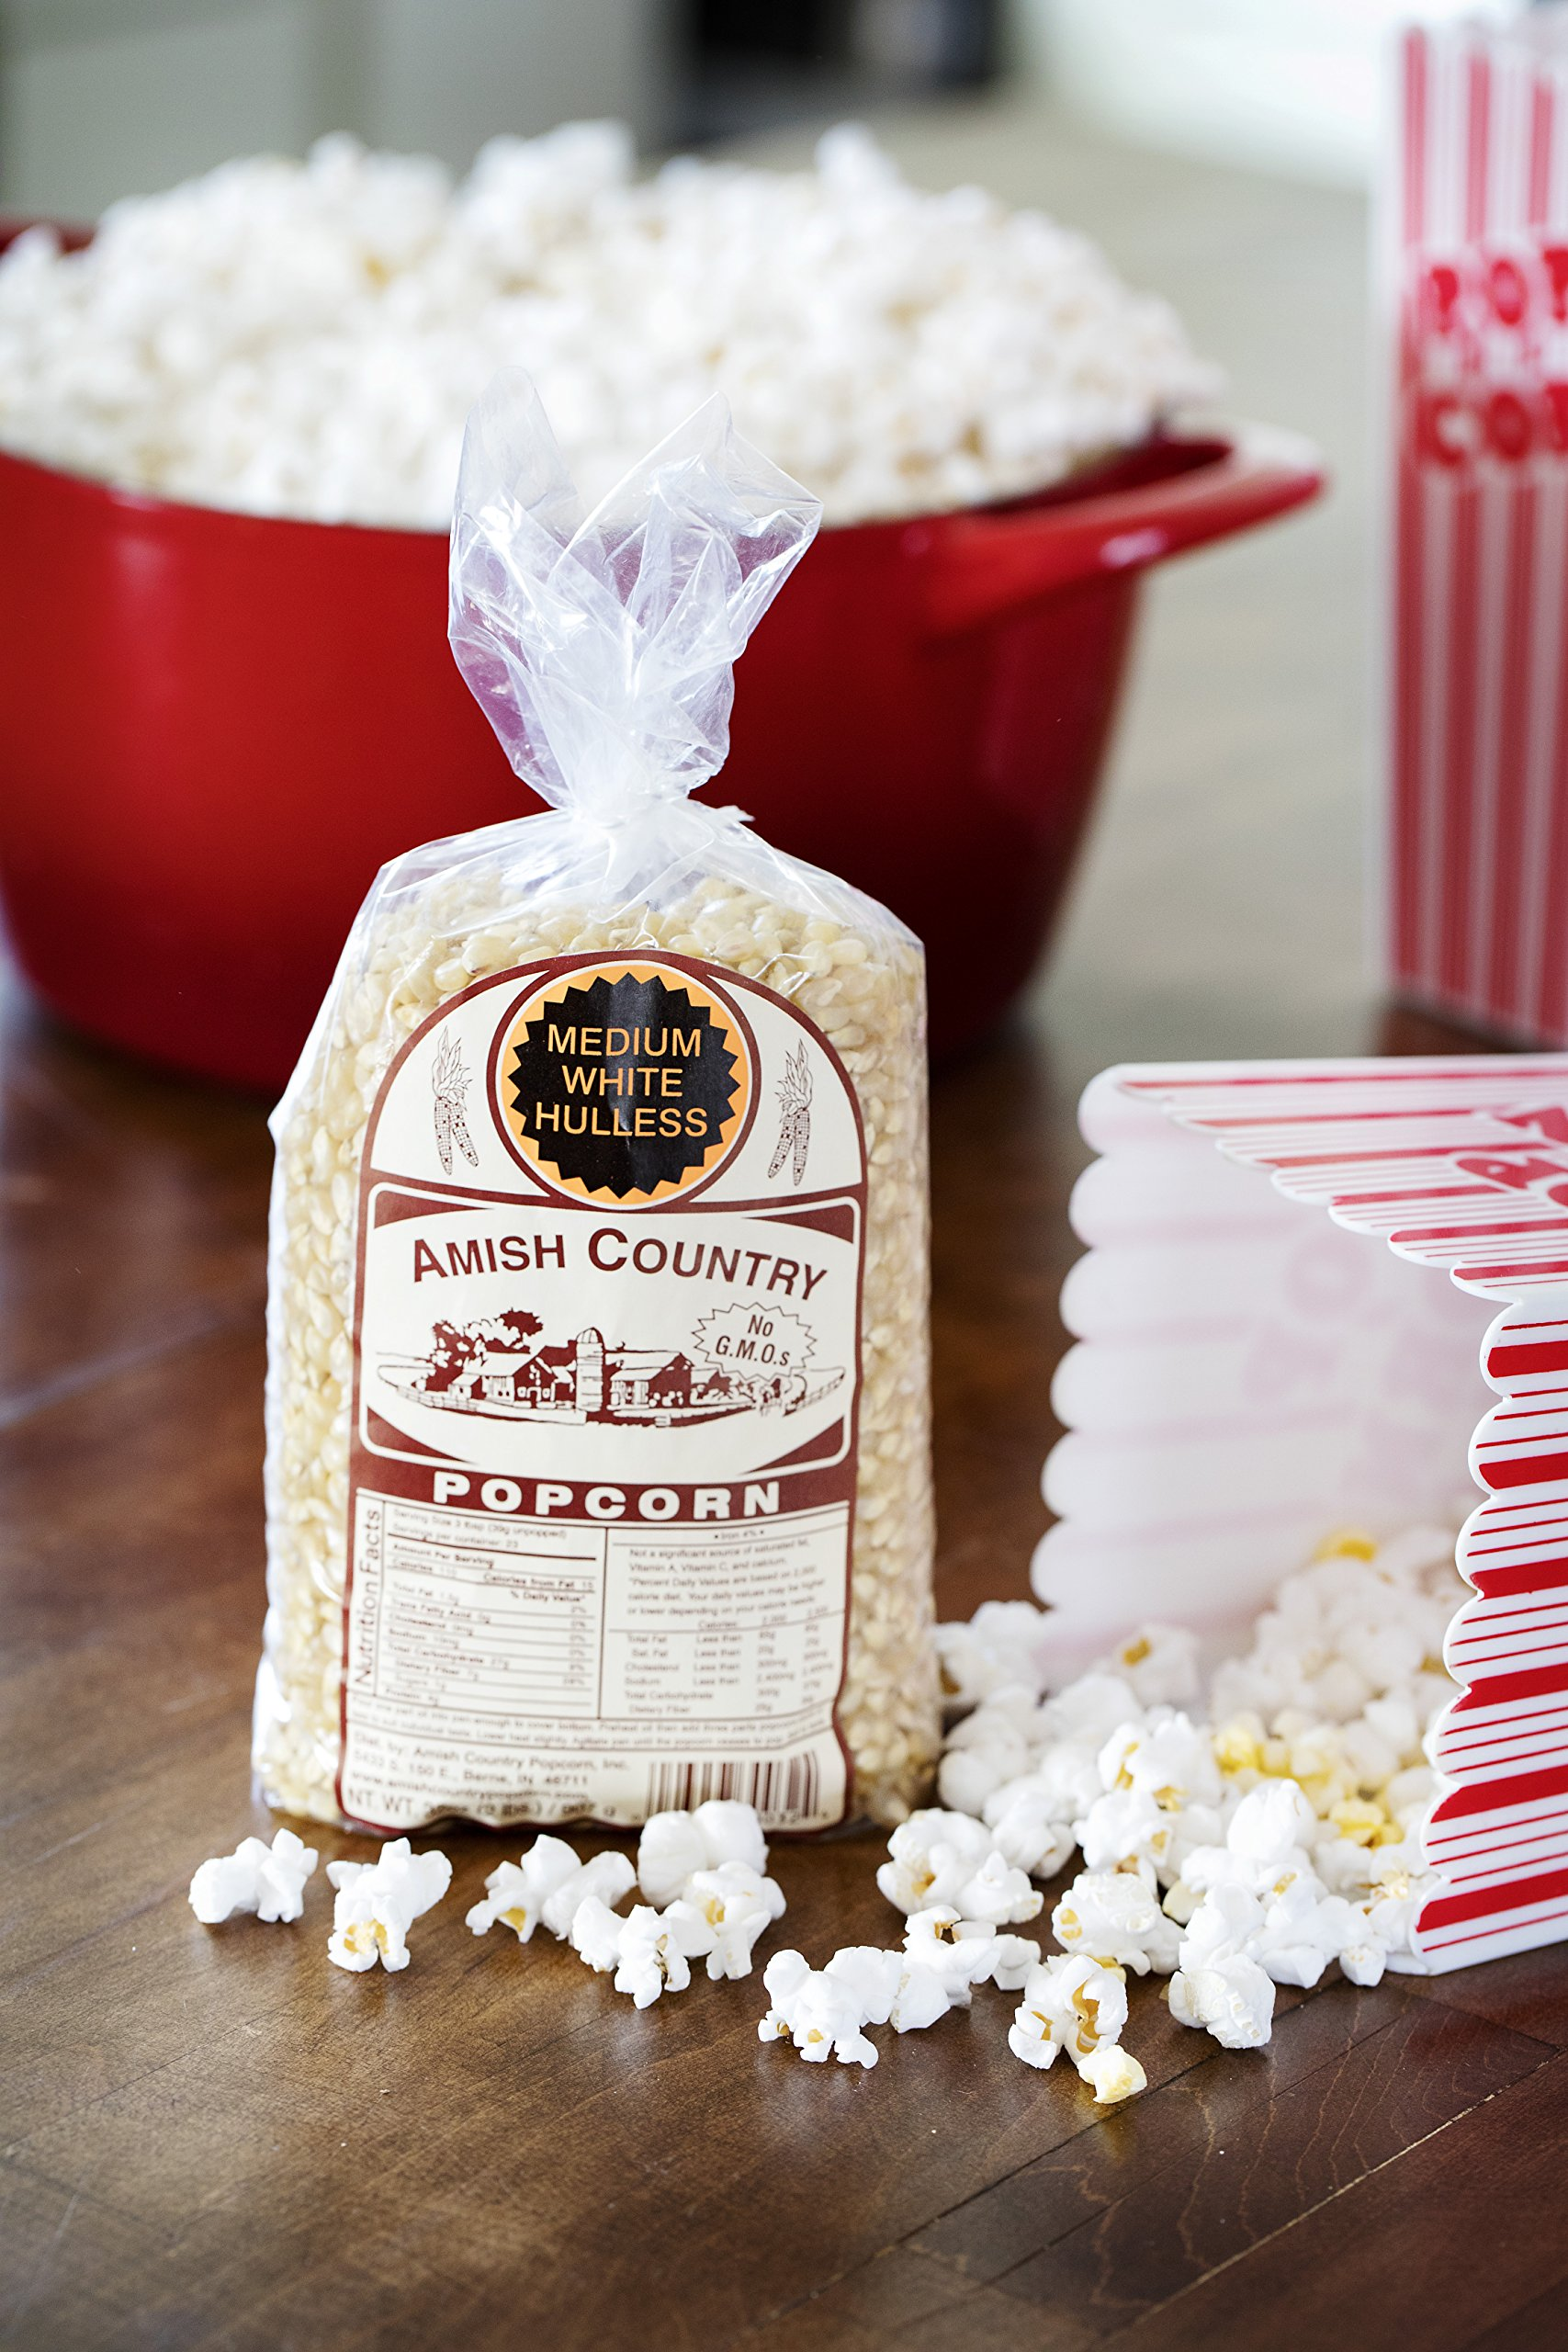 Amish Country Popcorn - Medium White Popcorn (2 Pound Bag) Old Fashioned, Non GMO, and Gluten Free - with Recipe Guide by Amish Country Popcorn (Image #4)